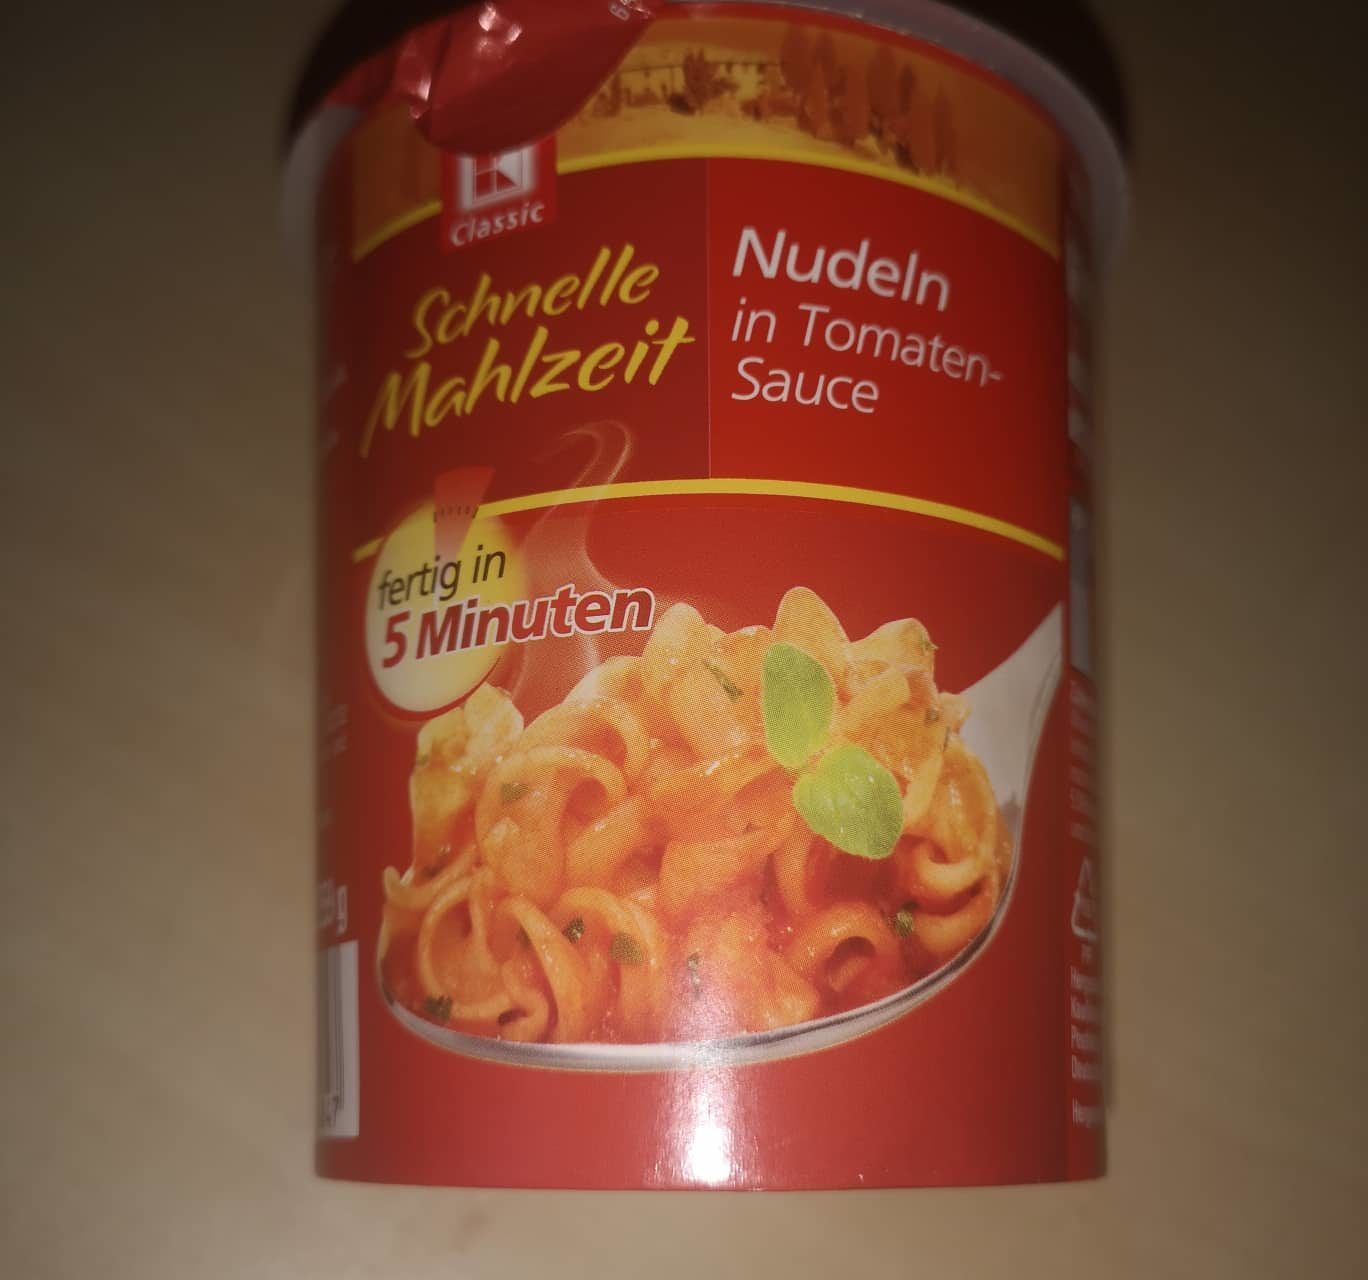 "#1706: K-Classic Schnelle Mahlzeit ""Nudeln in Tomaten-Sauce"" (2019)"